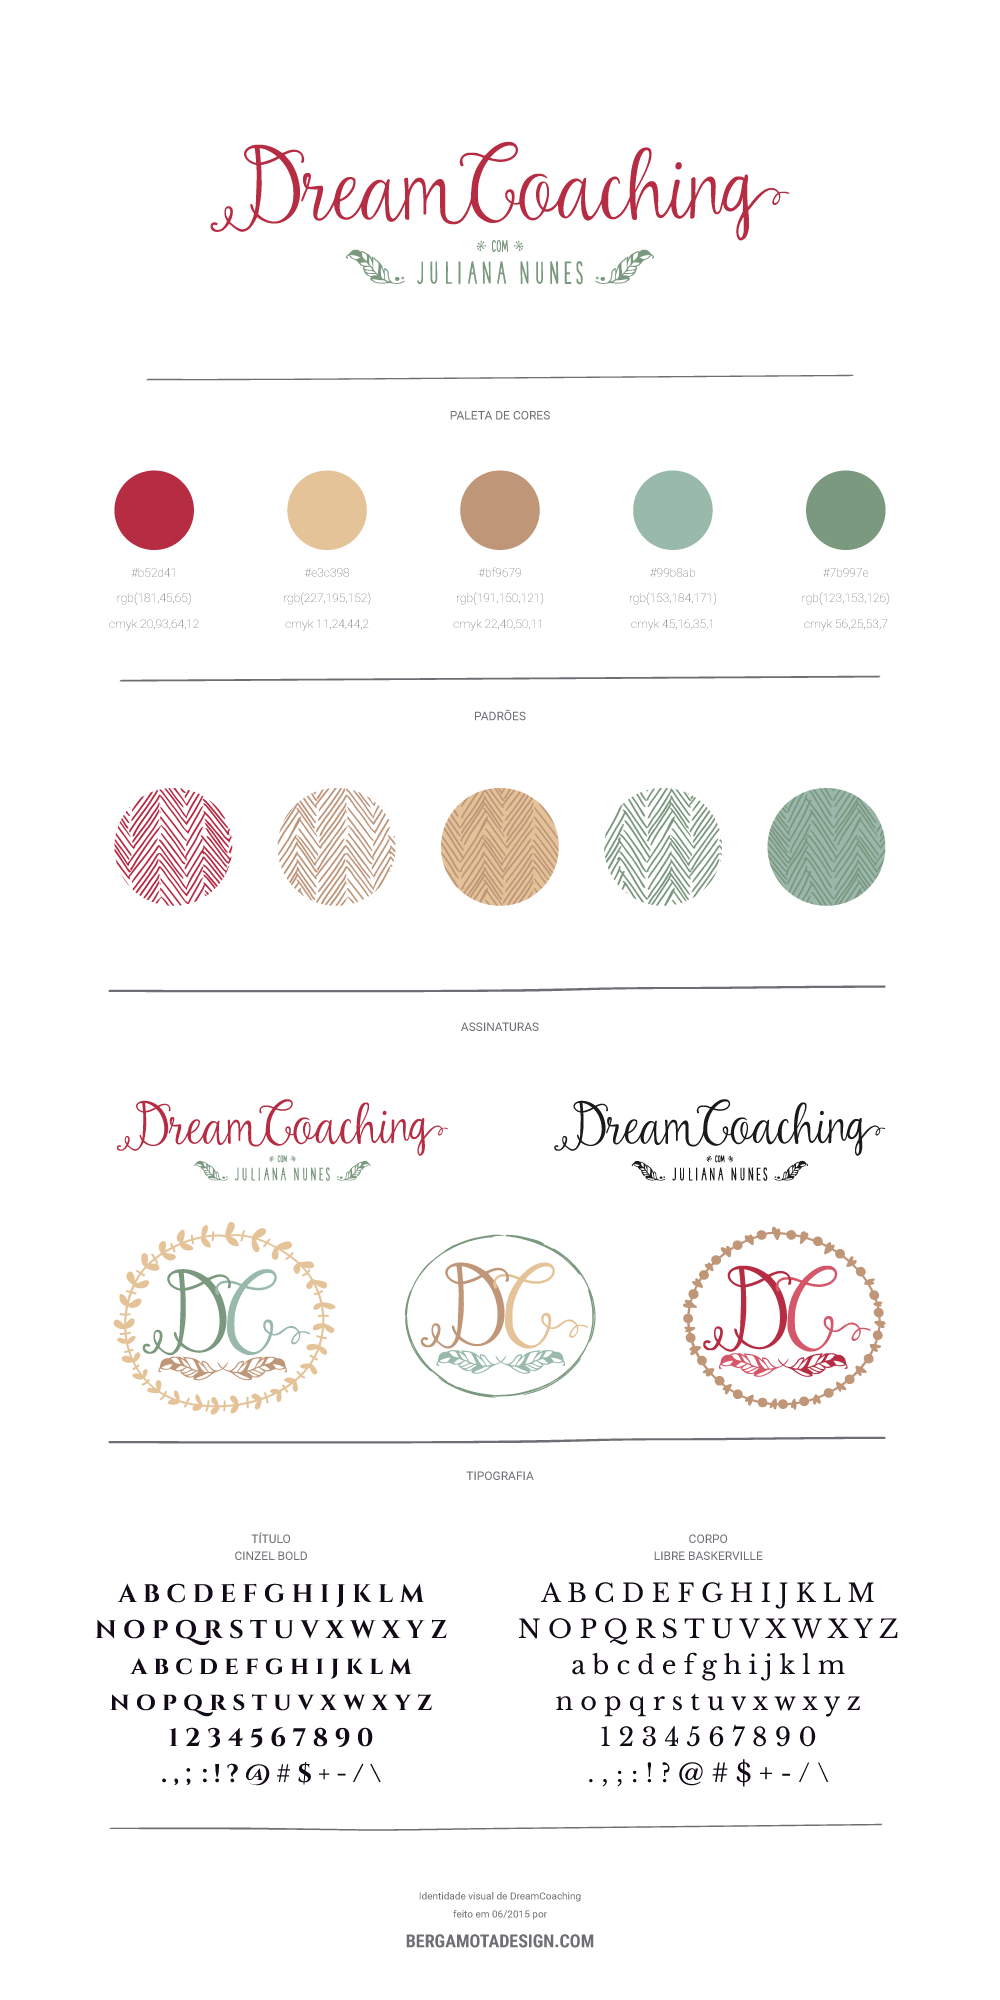 DreamCoaching | Identidade visual por bergamotadesign.com